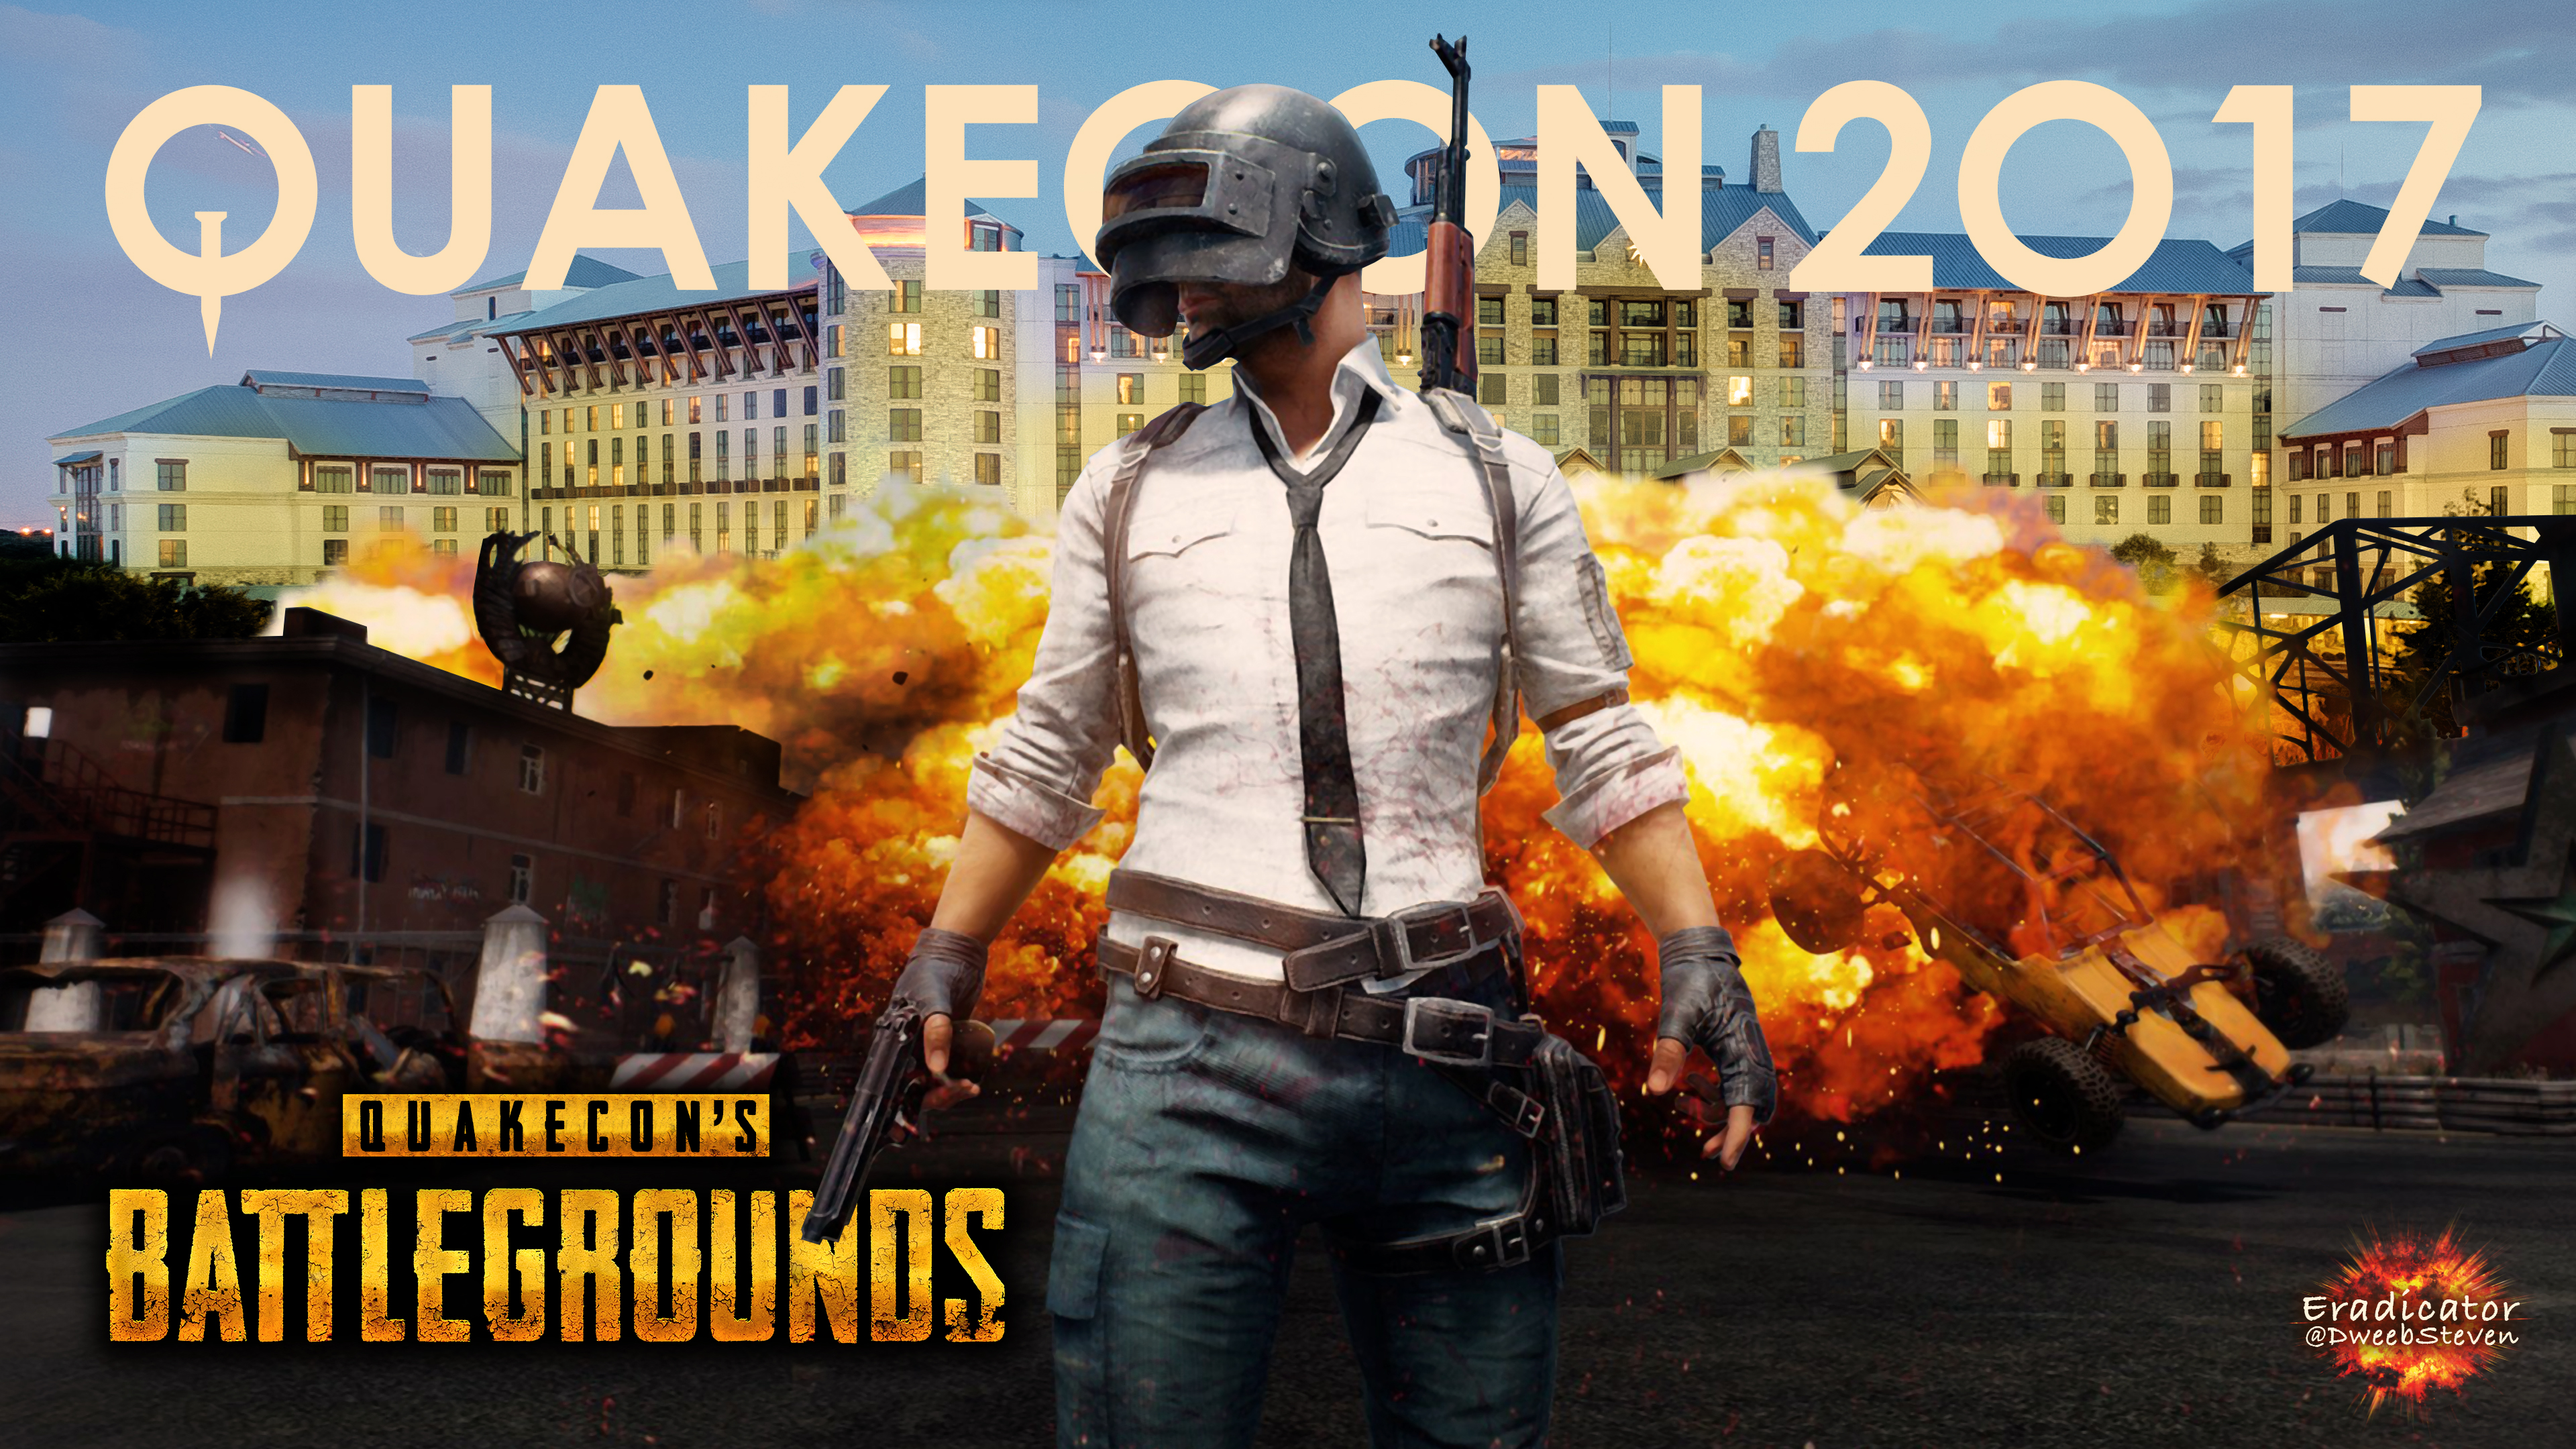 Quakecons Battlegrounds 1